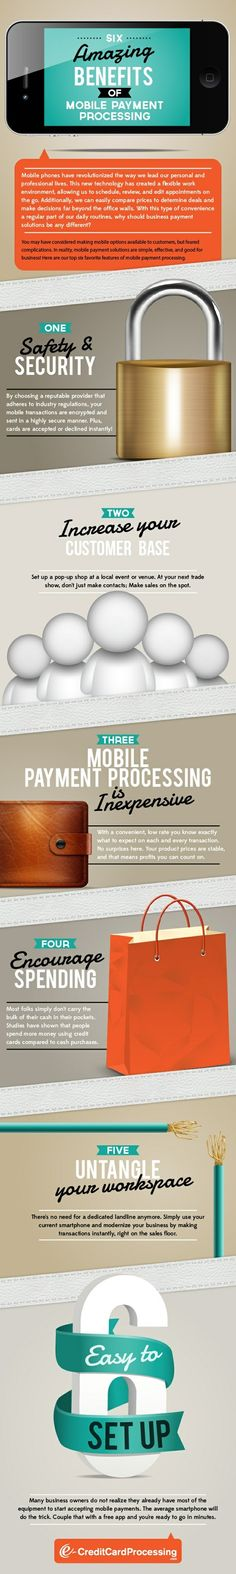 Mobile Payments 10